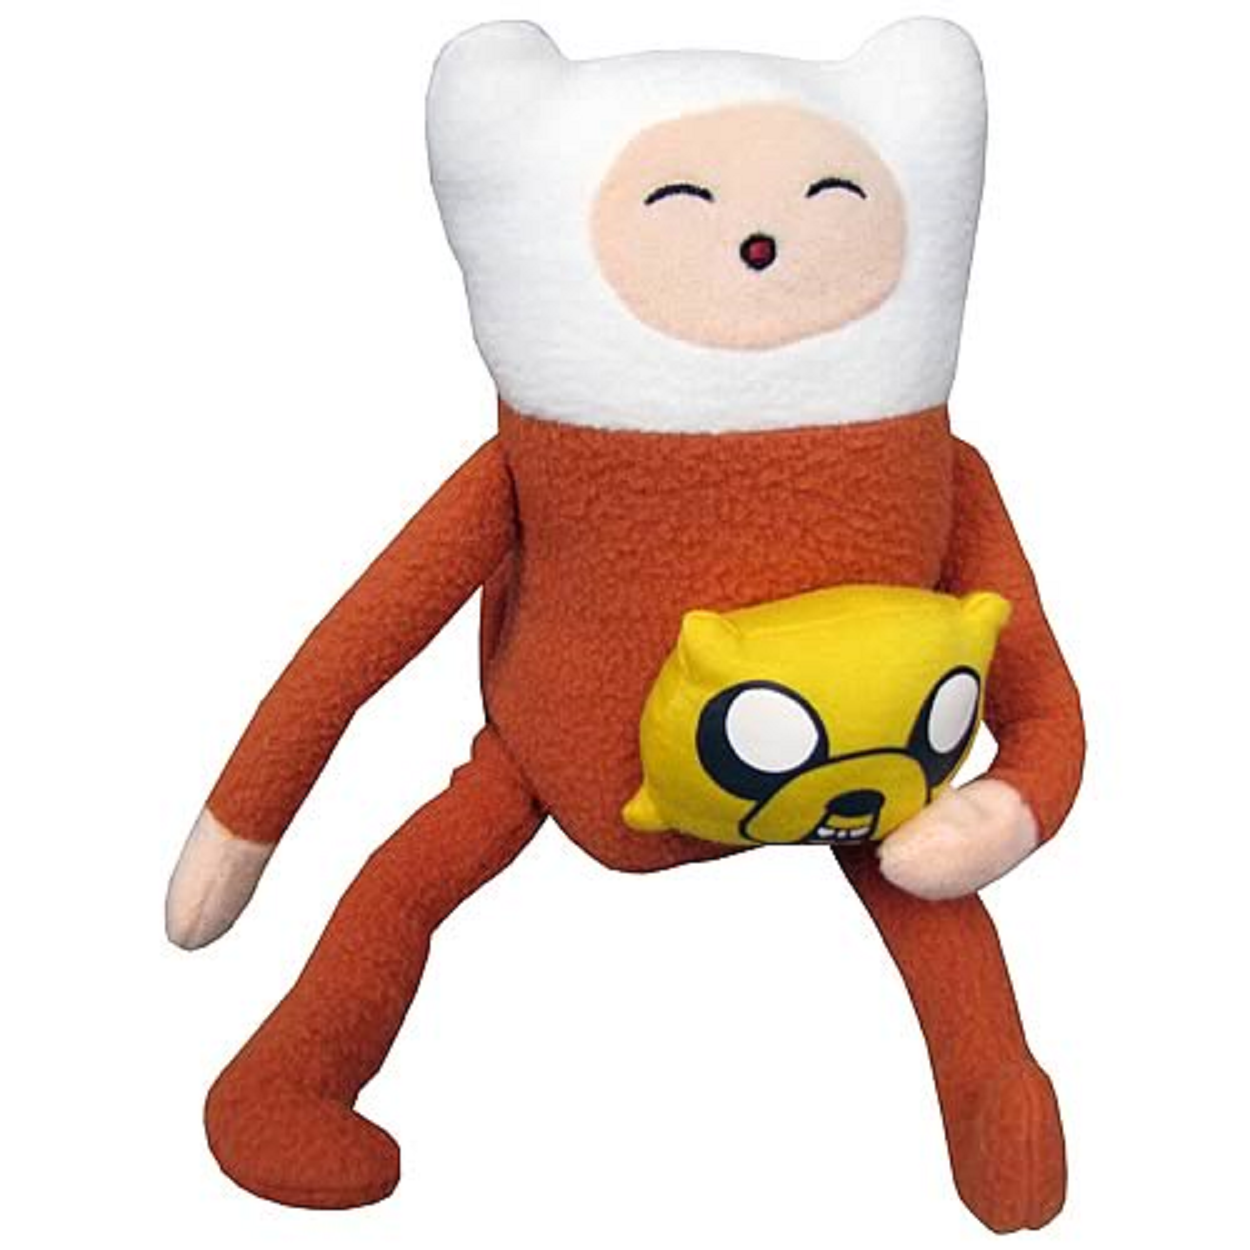 Plush Toys - Adventure Time - Night time Finn w Jake - 11 inch